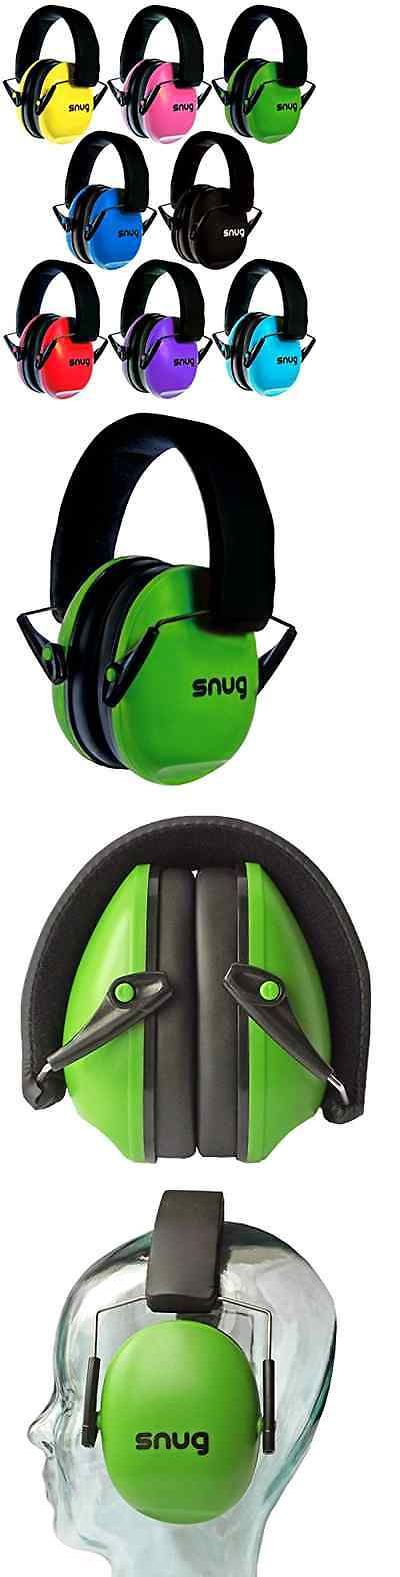 Hearing Protection 73942: Snug Hearing Protection Ear Muffs Cover Noise Cancelling Earmuffs Sports Range 1 -> BUY IT NOW ONLY: $47.52 on eBay!